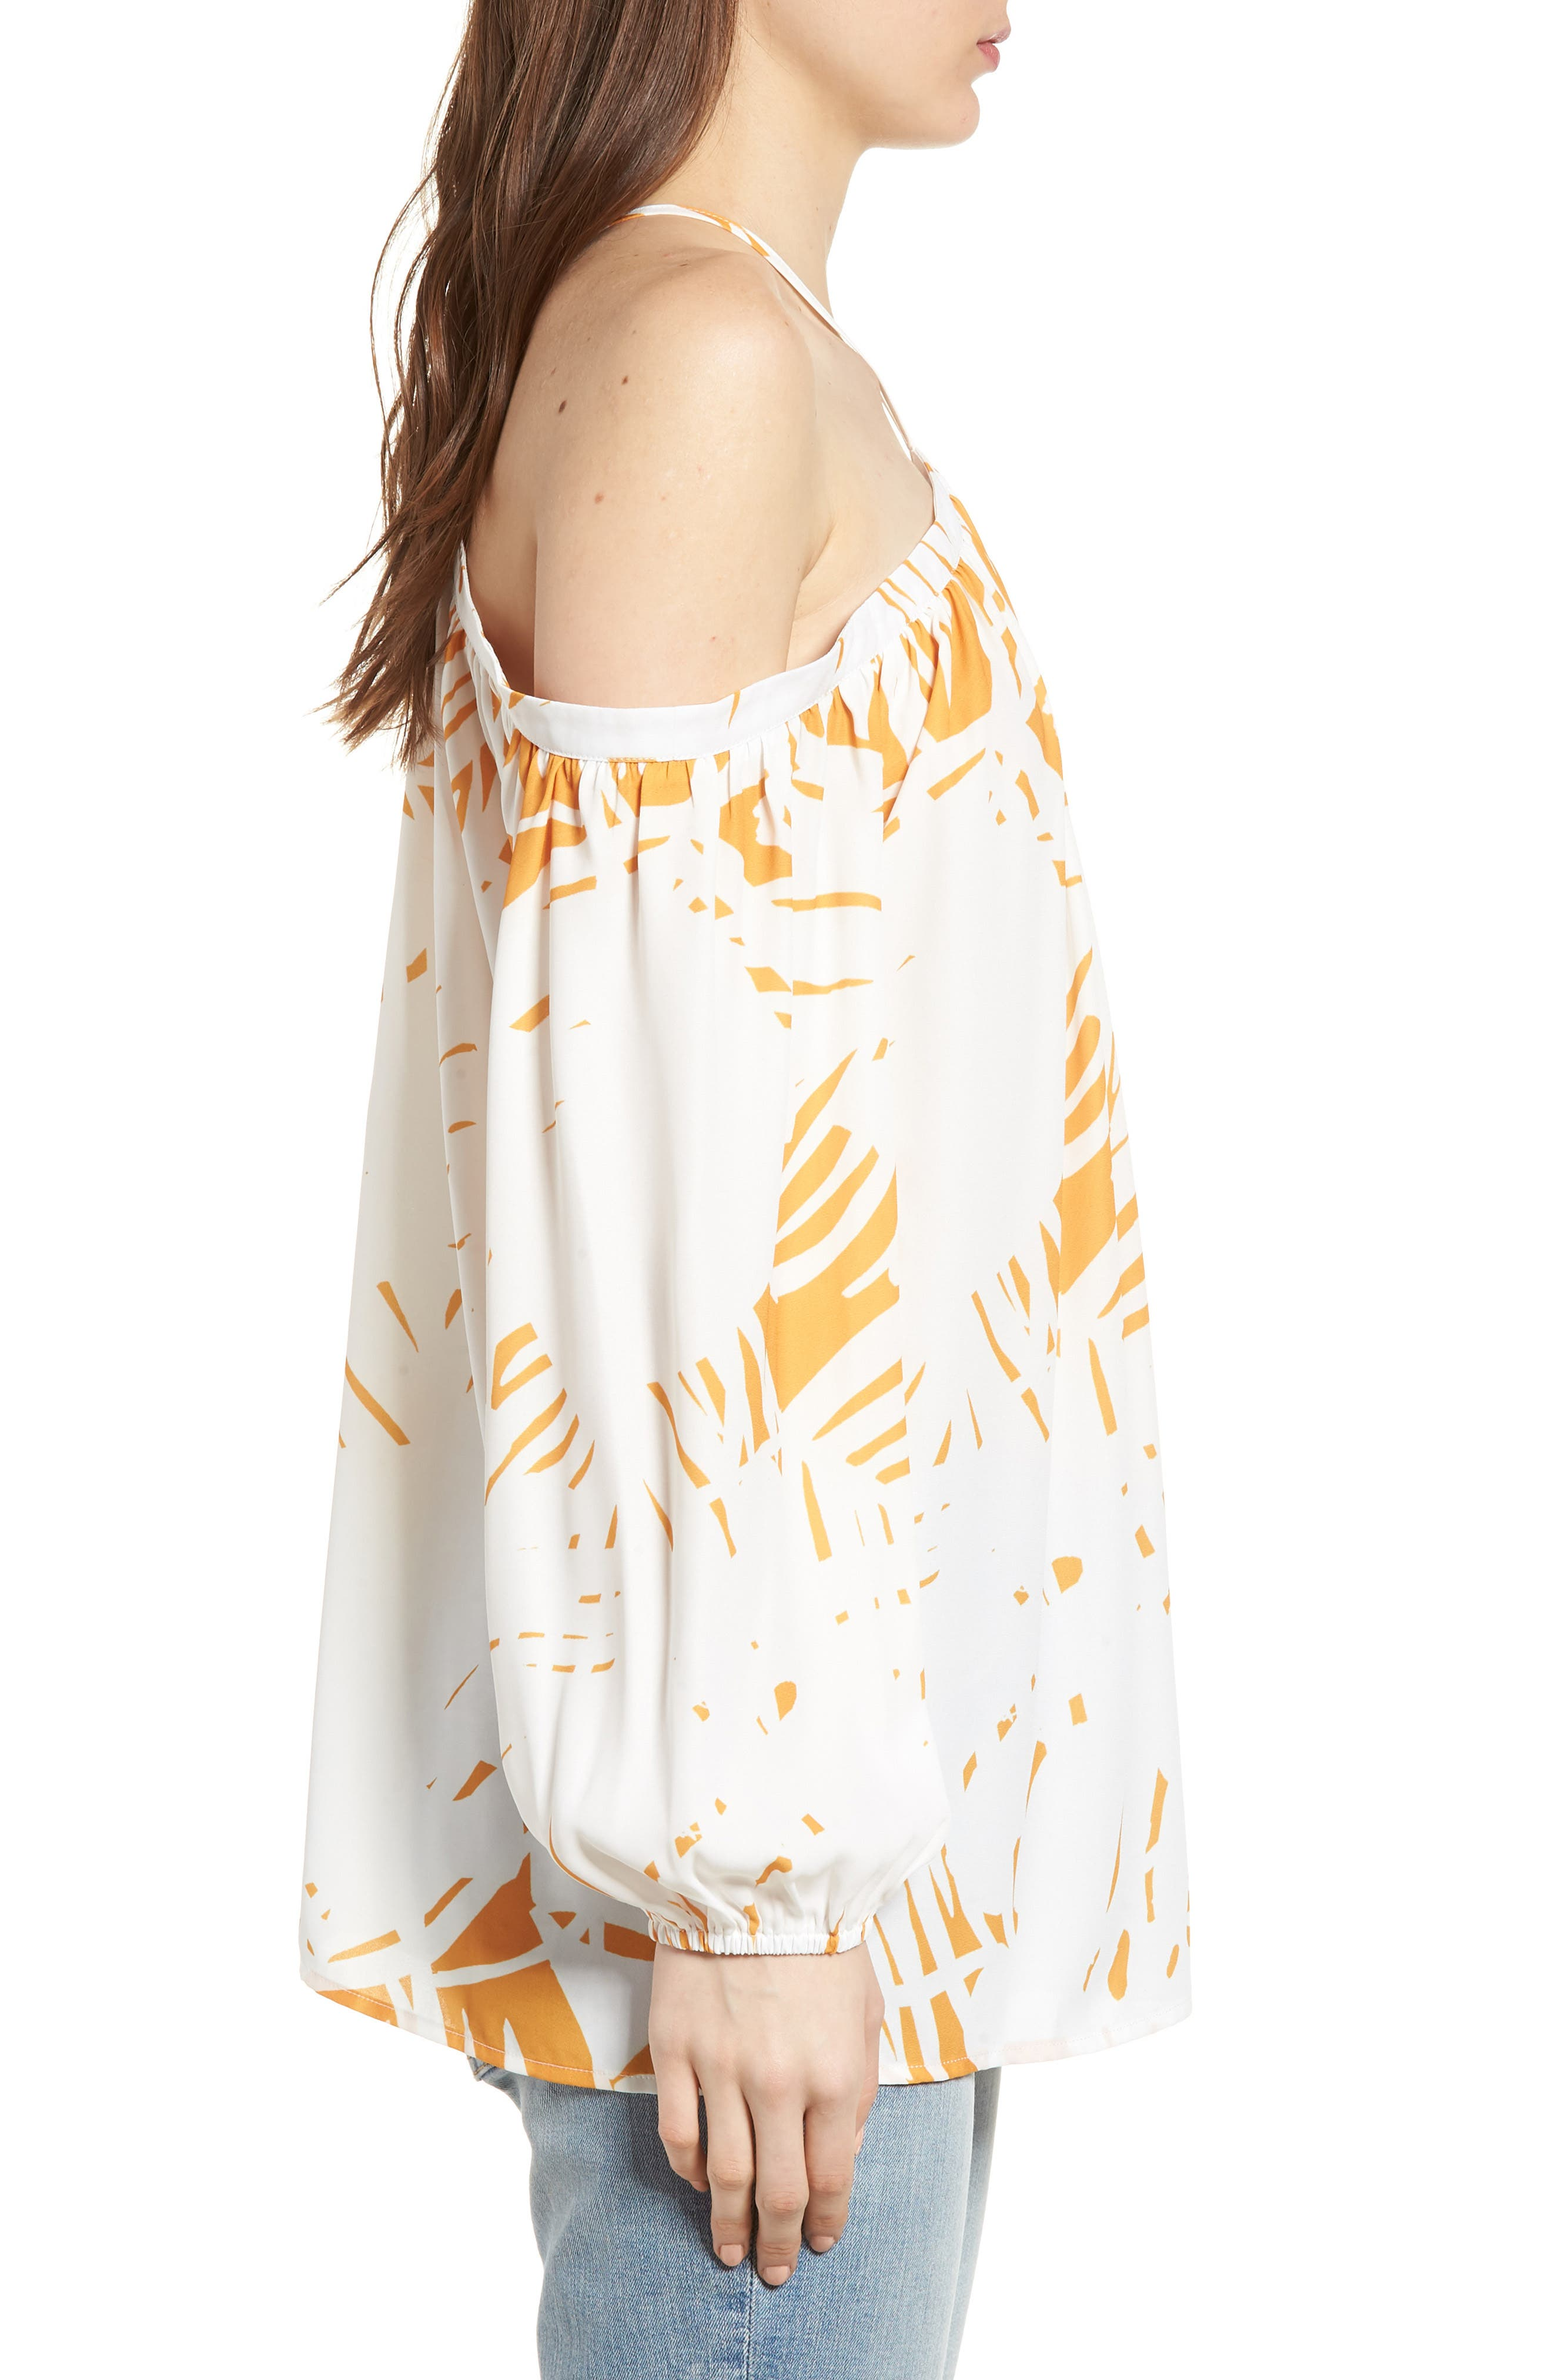 Bishop + Young Ana Palm Print Off the Shoulder Top,                             Alternate thumbnail 3, color,                             Riviera Print